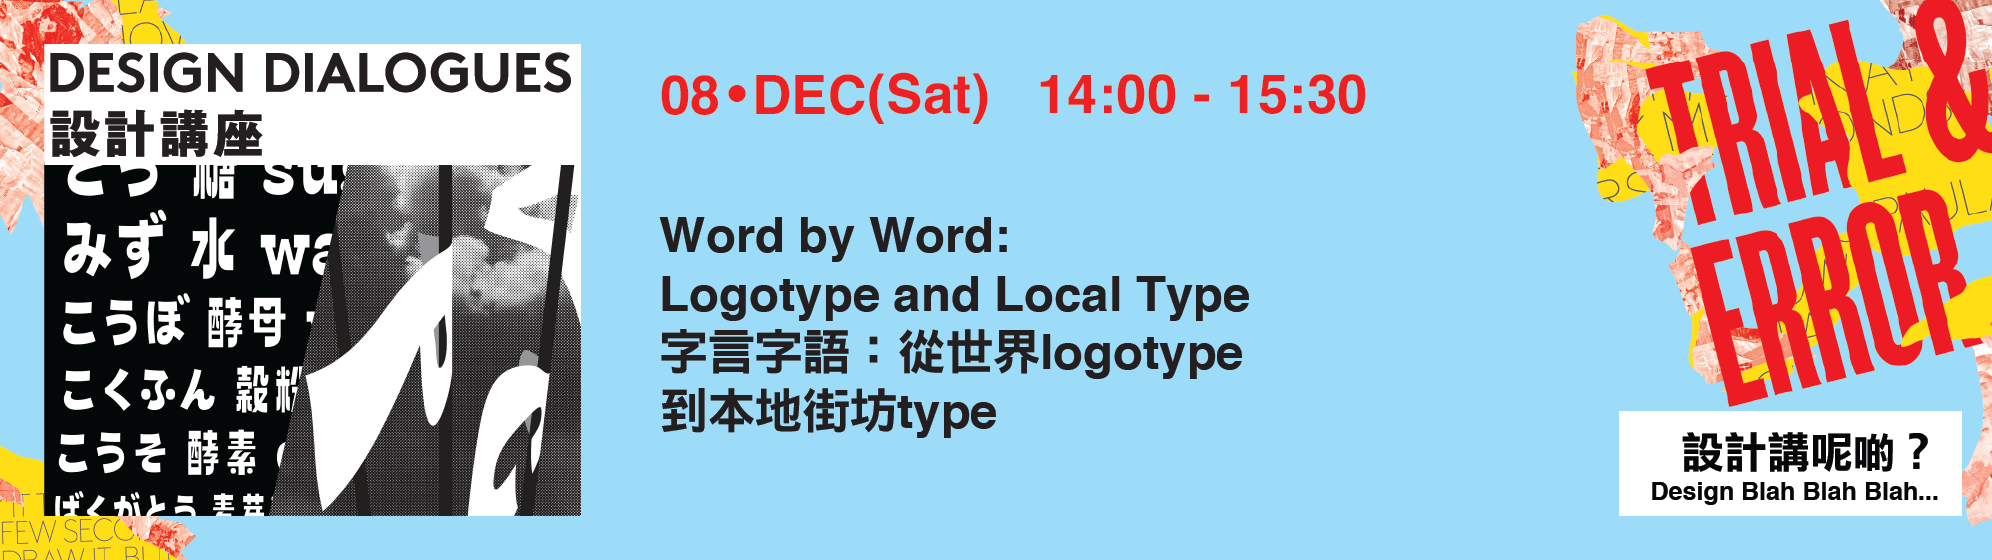 字言字語:從世界logotype到本地街坊type | Word by Word: Logotype and Local Type